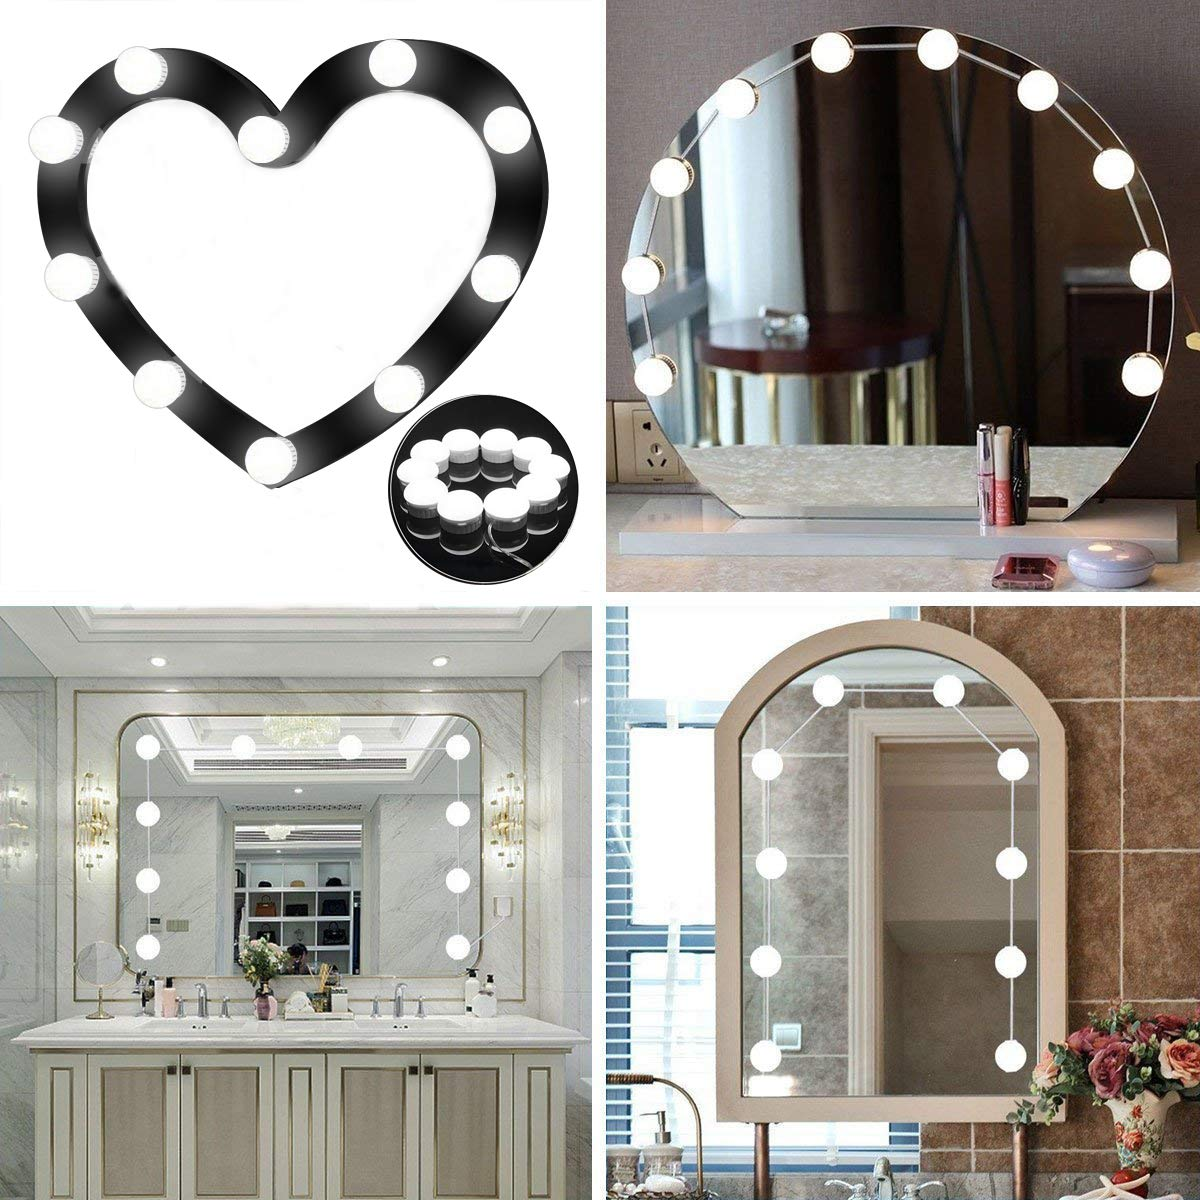 Hollywood Style LED Vanity Mirror Lights Kit Alture 10 Dimmable Light Bulbs 15.2FT Adjustable Length Daylight Whilte LED Vanity Light with Dimmer for Makeup Vanity Table Set in Dressing Room Mirror